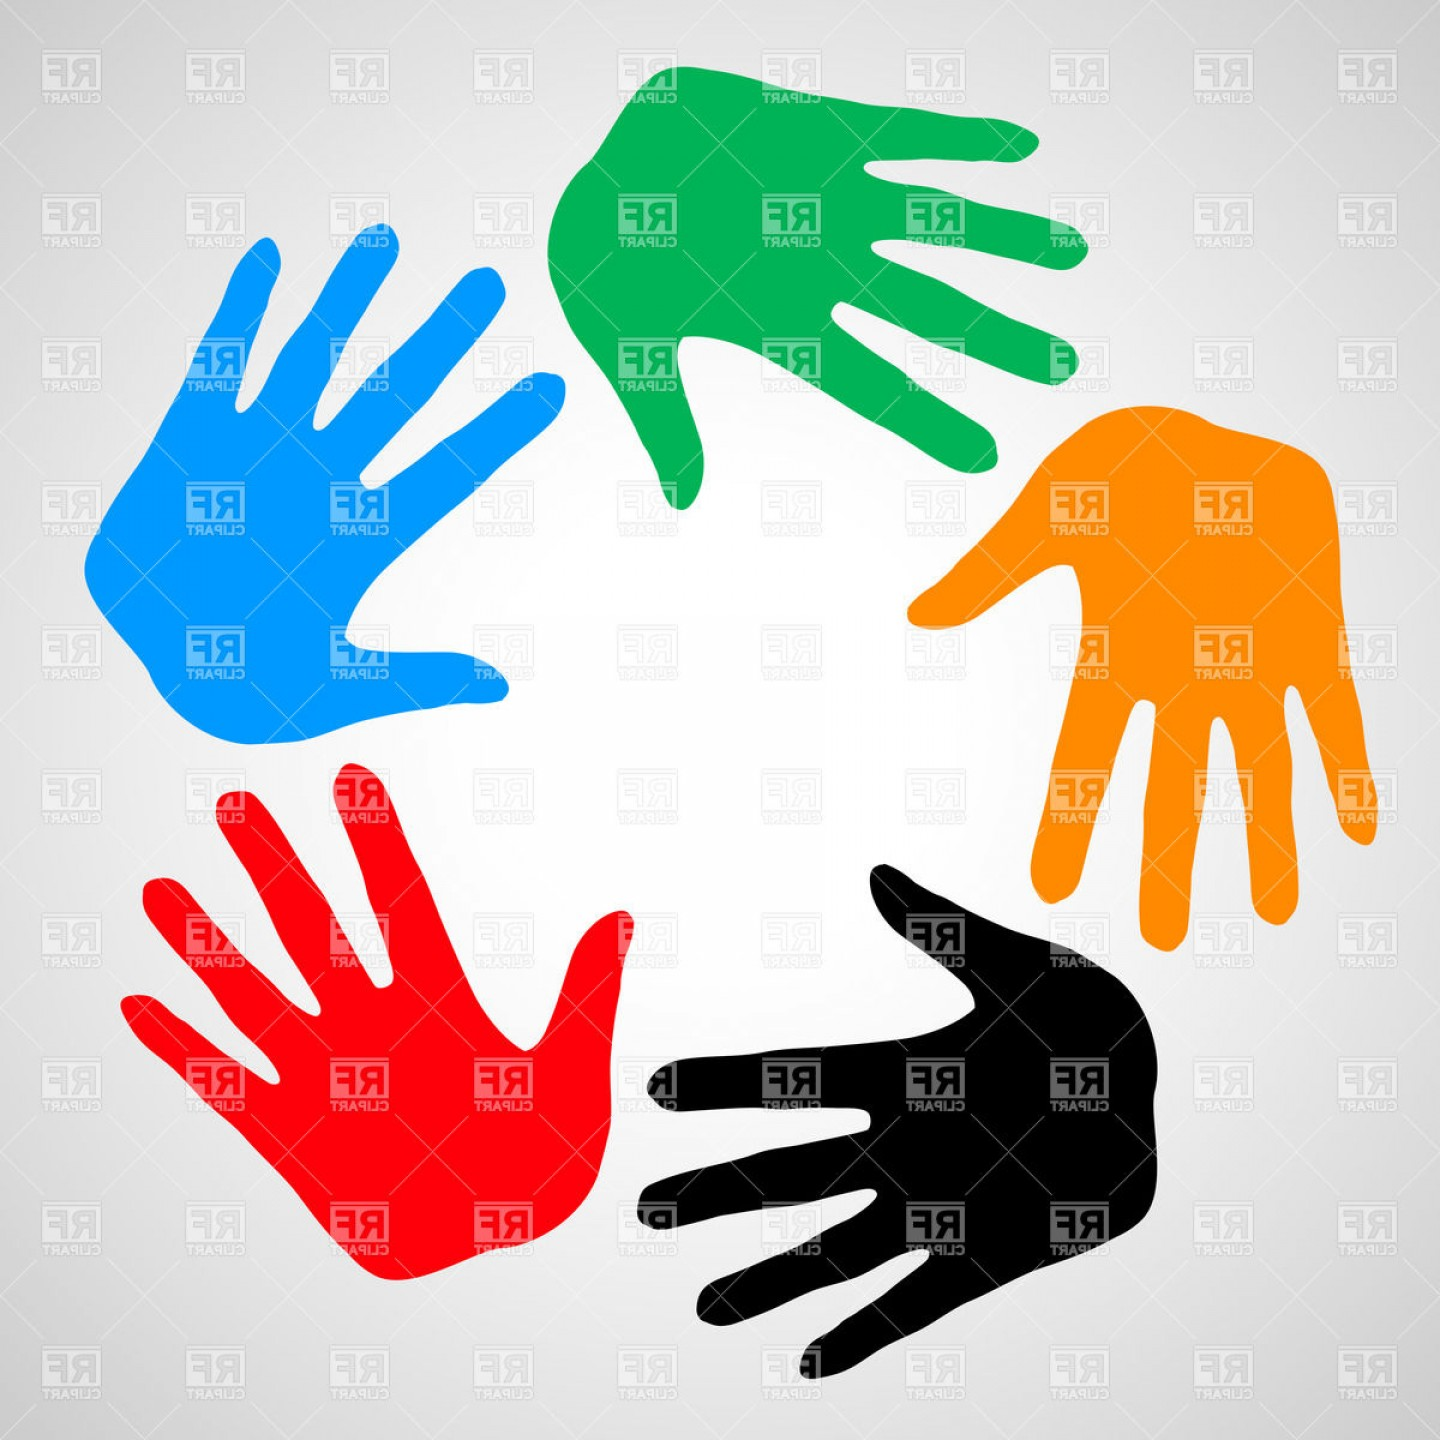 Support Vector Graphics: Colorful Hands As Symbol Friendship Help And Support Vector Clipart